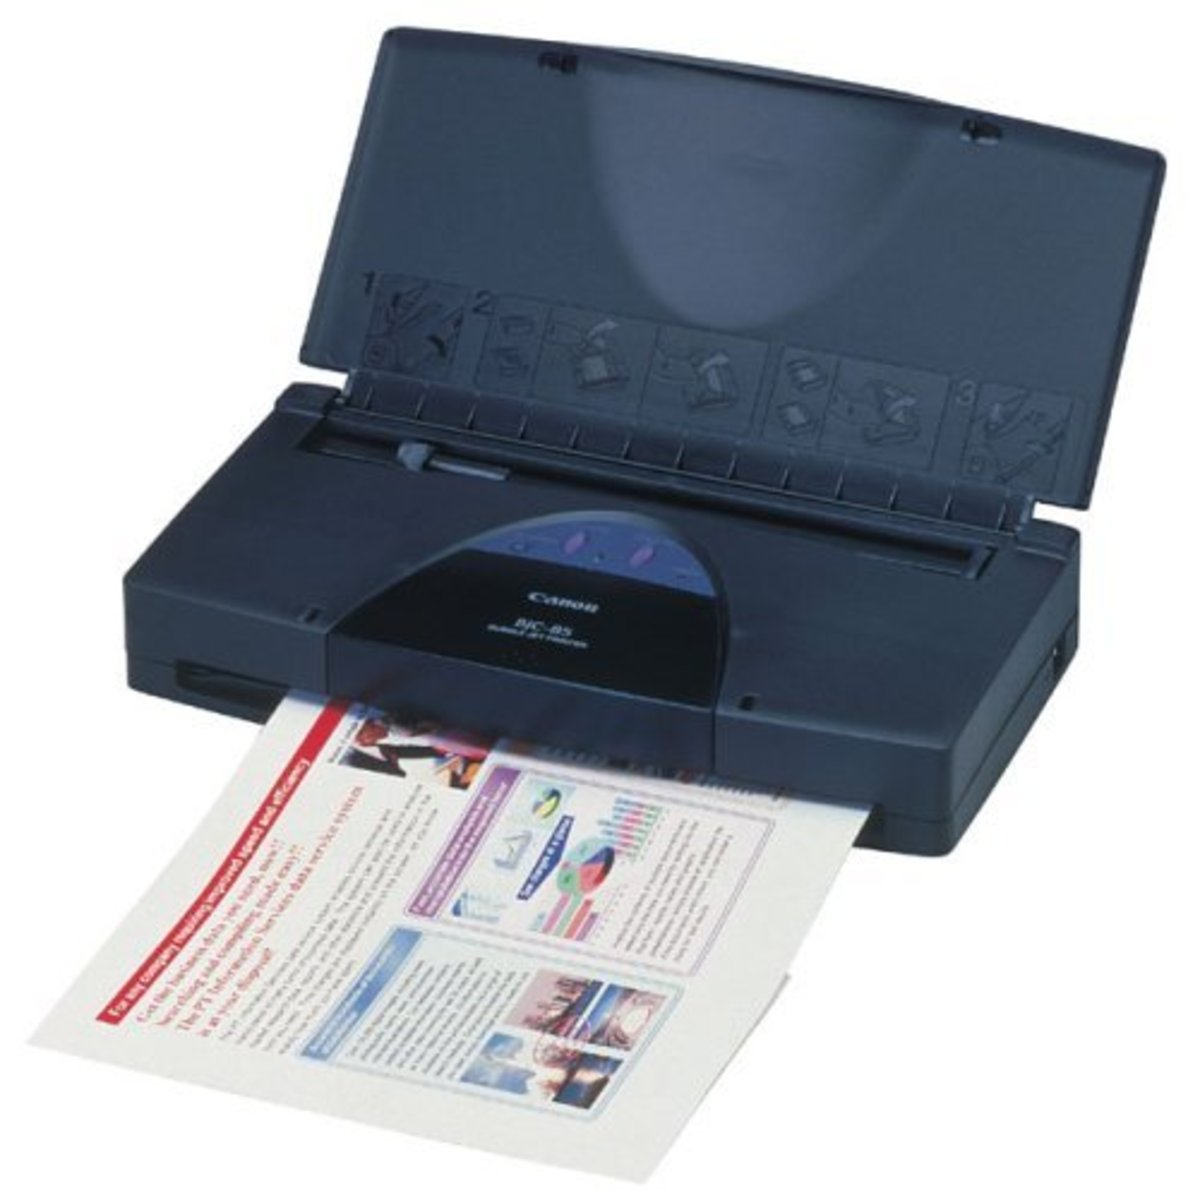 Canon BJC-85 Printer